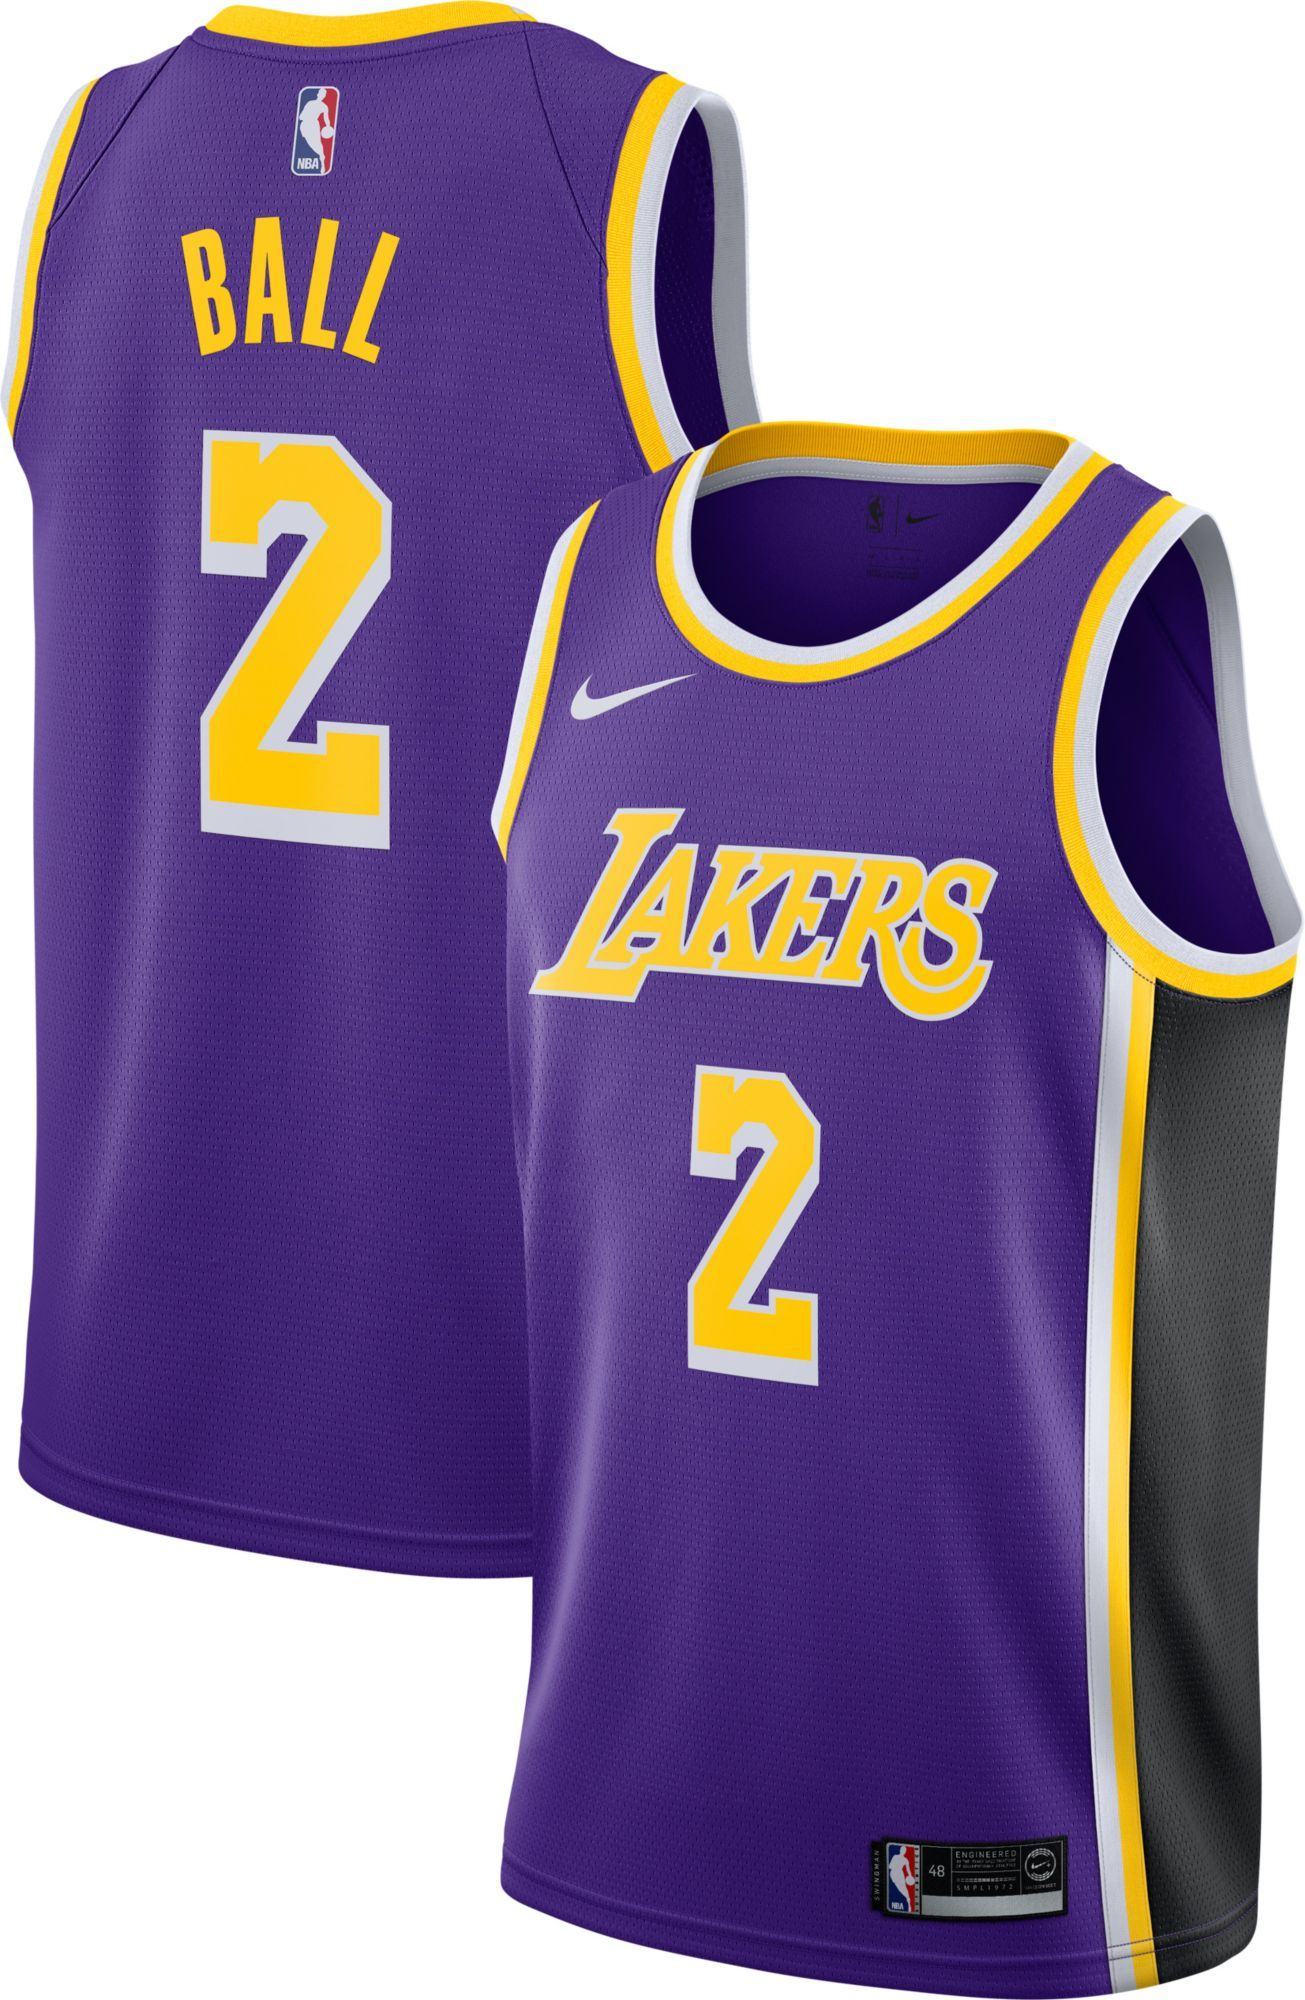 a857b3d2067 Nike Youth Los Angeles Lakers Lonzo Ball #2 Purple Statement Dri-FIT Swingman  Jersey, Team